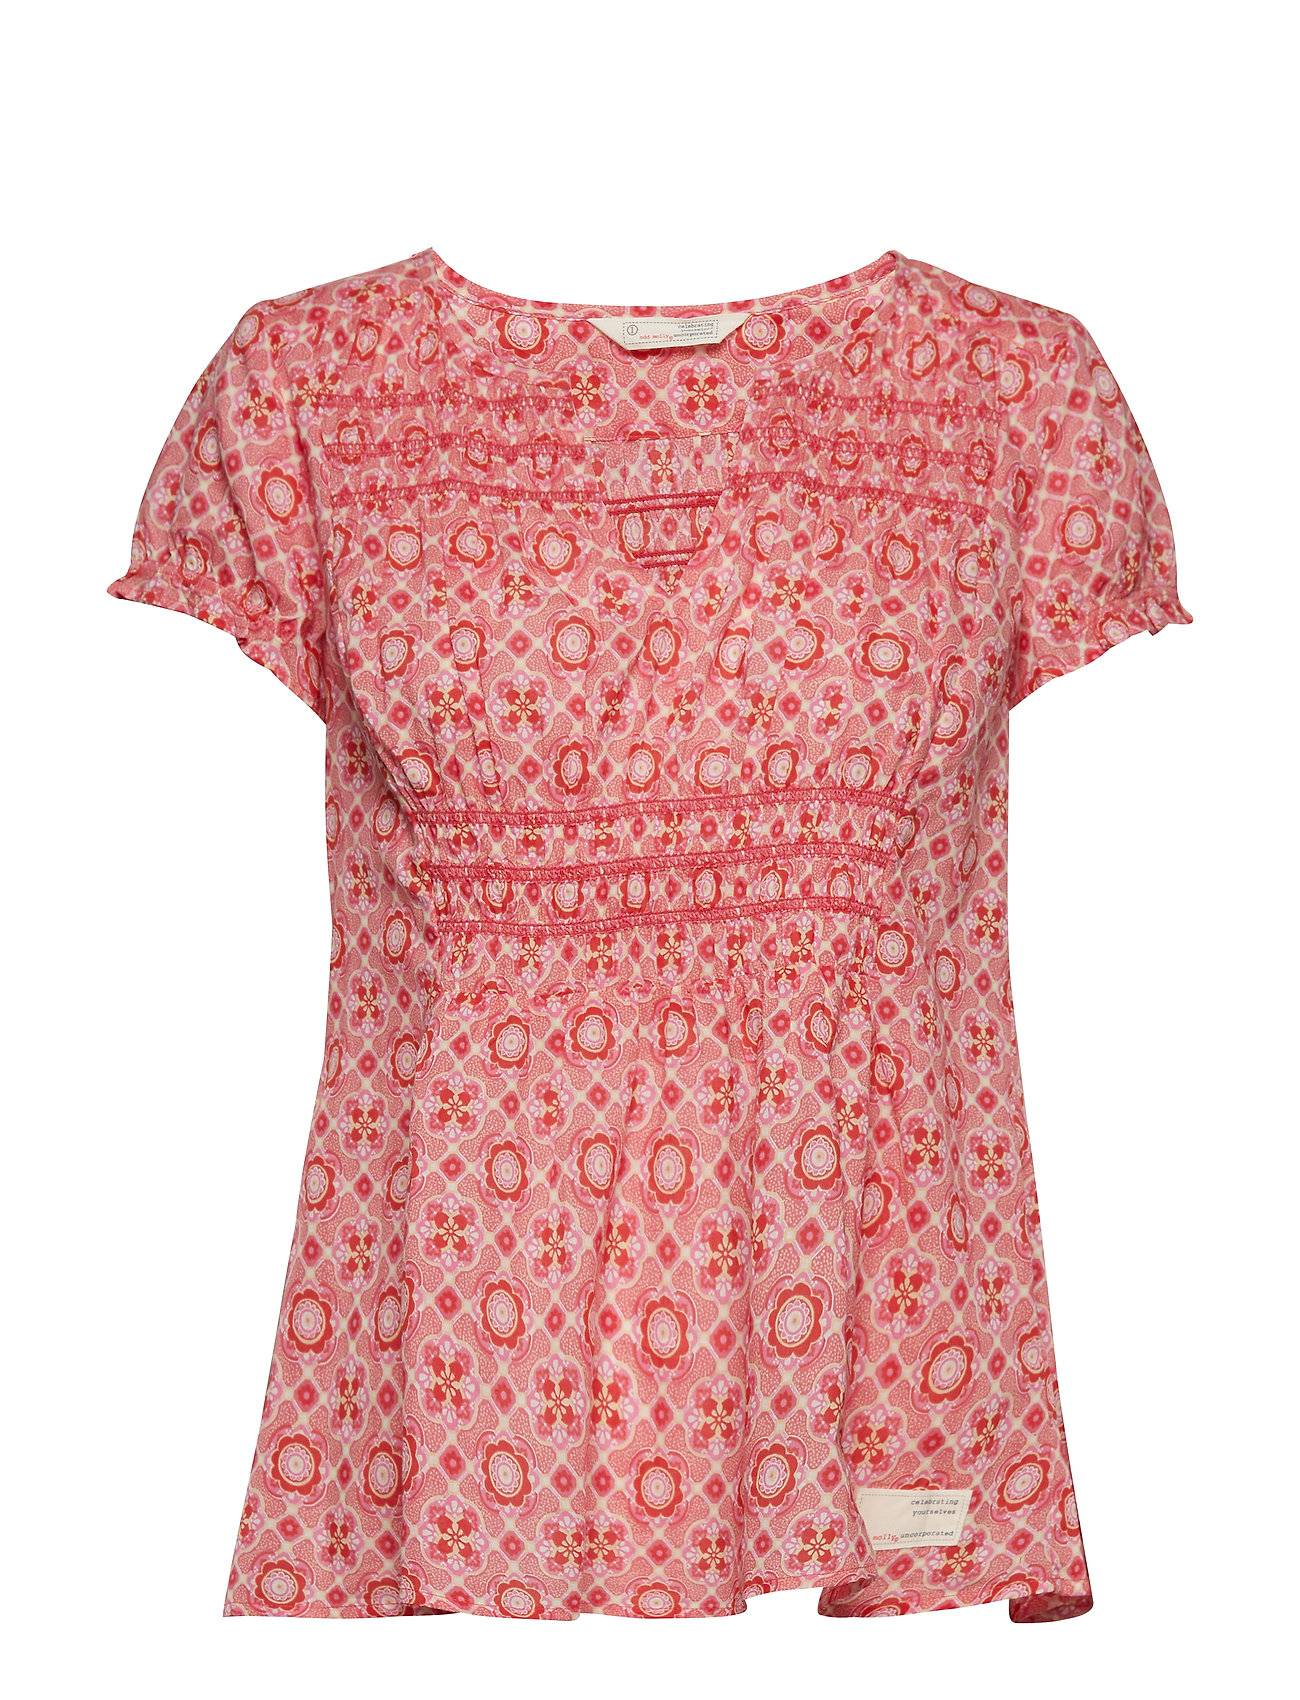 Image of ODD MOLLY Facile Flower Blouse T-shirts & Tops Short-sleeved Vaaleanpunainen ODD MOLLY